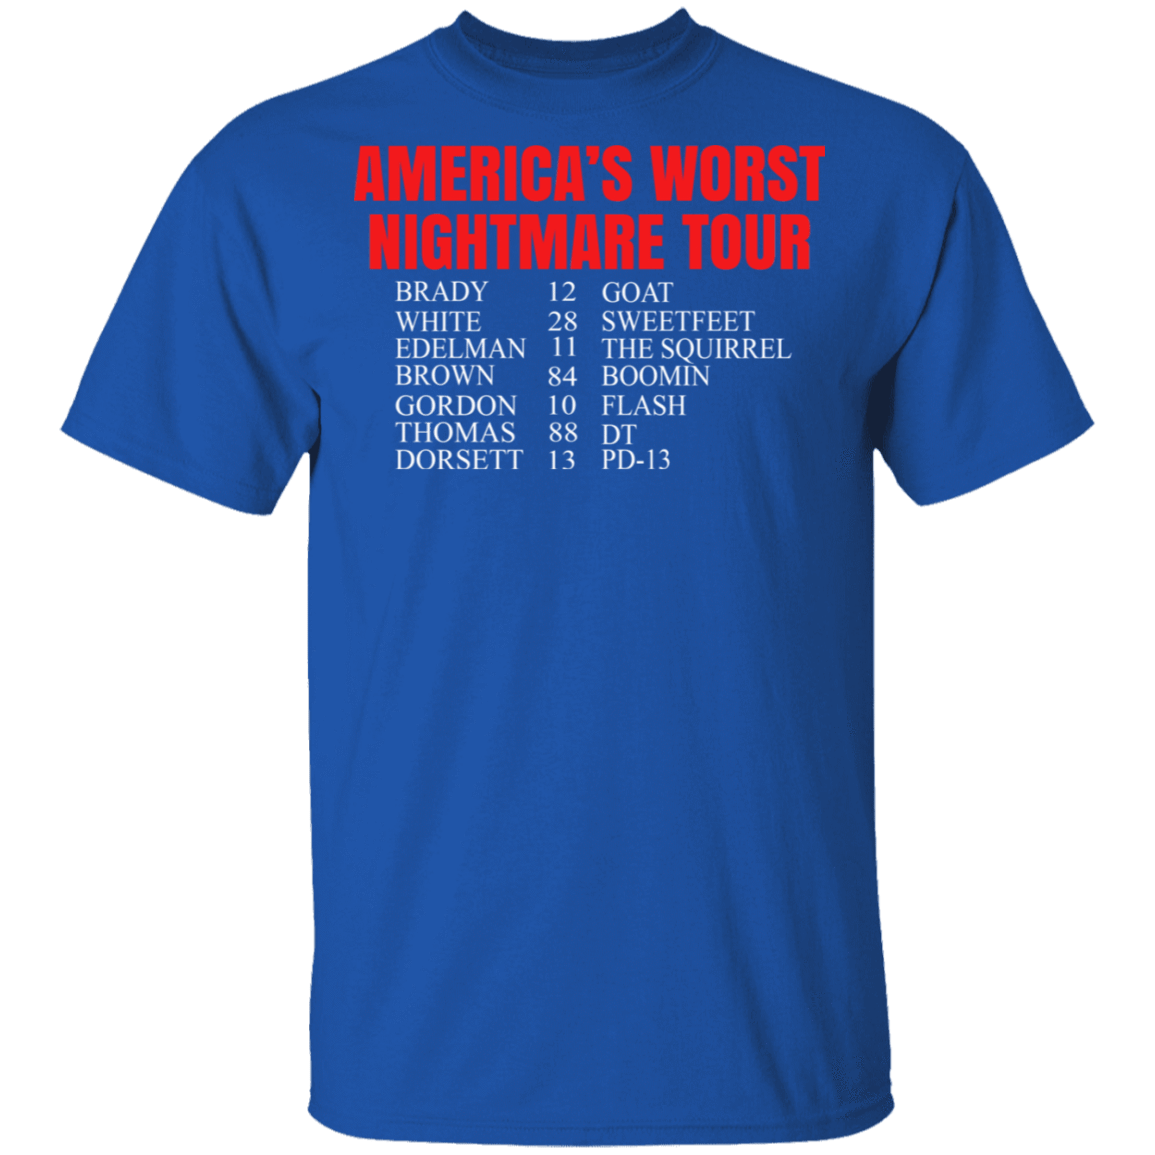 Bill's Plan America's Worst Nightmare Tour Brady Goat White Sweetfeet Edelman The Squirrel Shirt B T-Shirts, Hoodies, Tank 1049-9971-81772829-48286 - Tee Ript